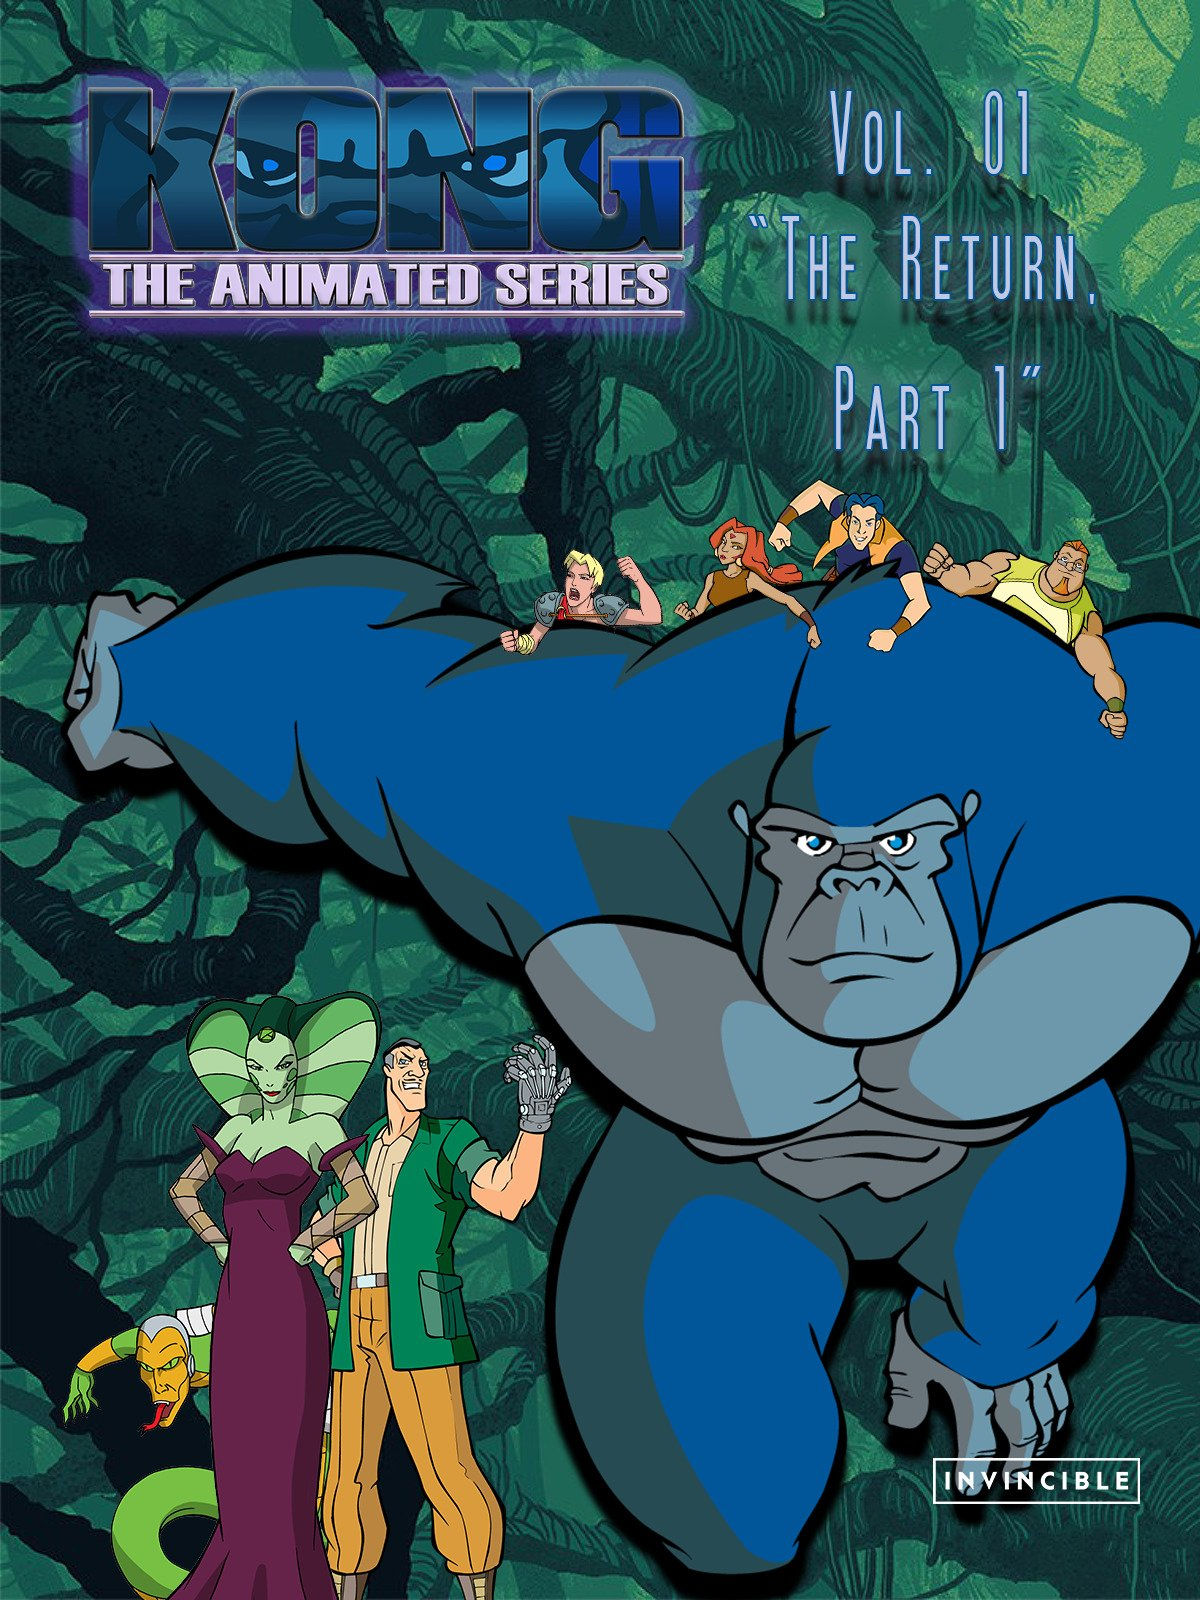 Kong The Animated Series Vol. 01The Return, Part 1 on Amazon Prime Video UK